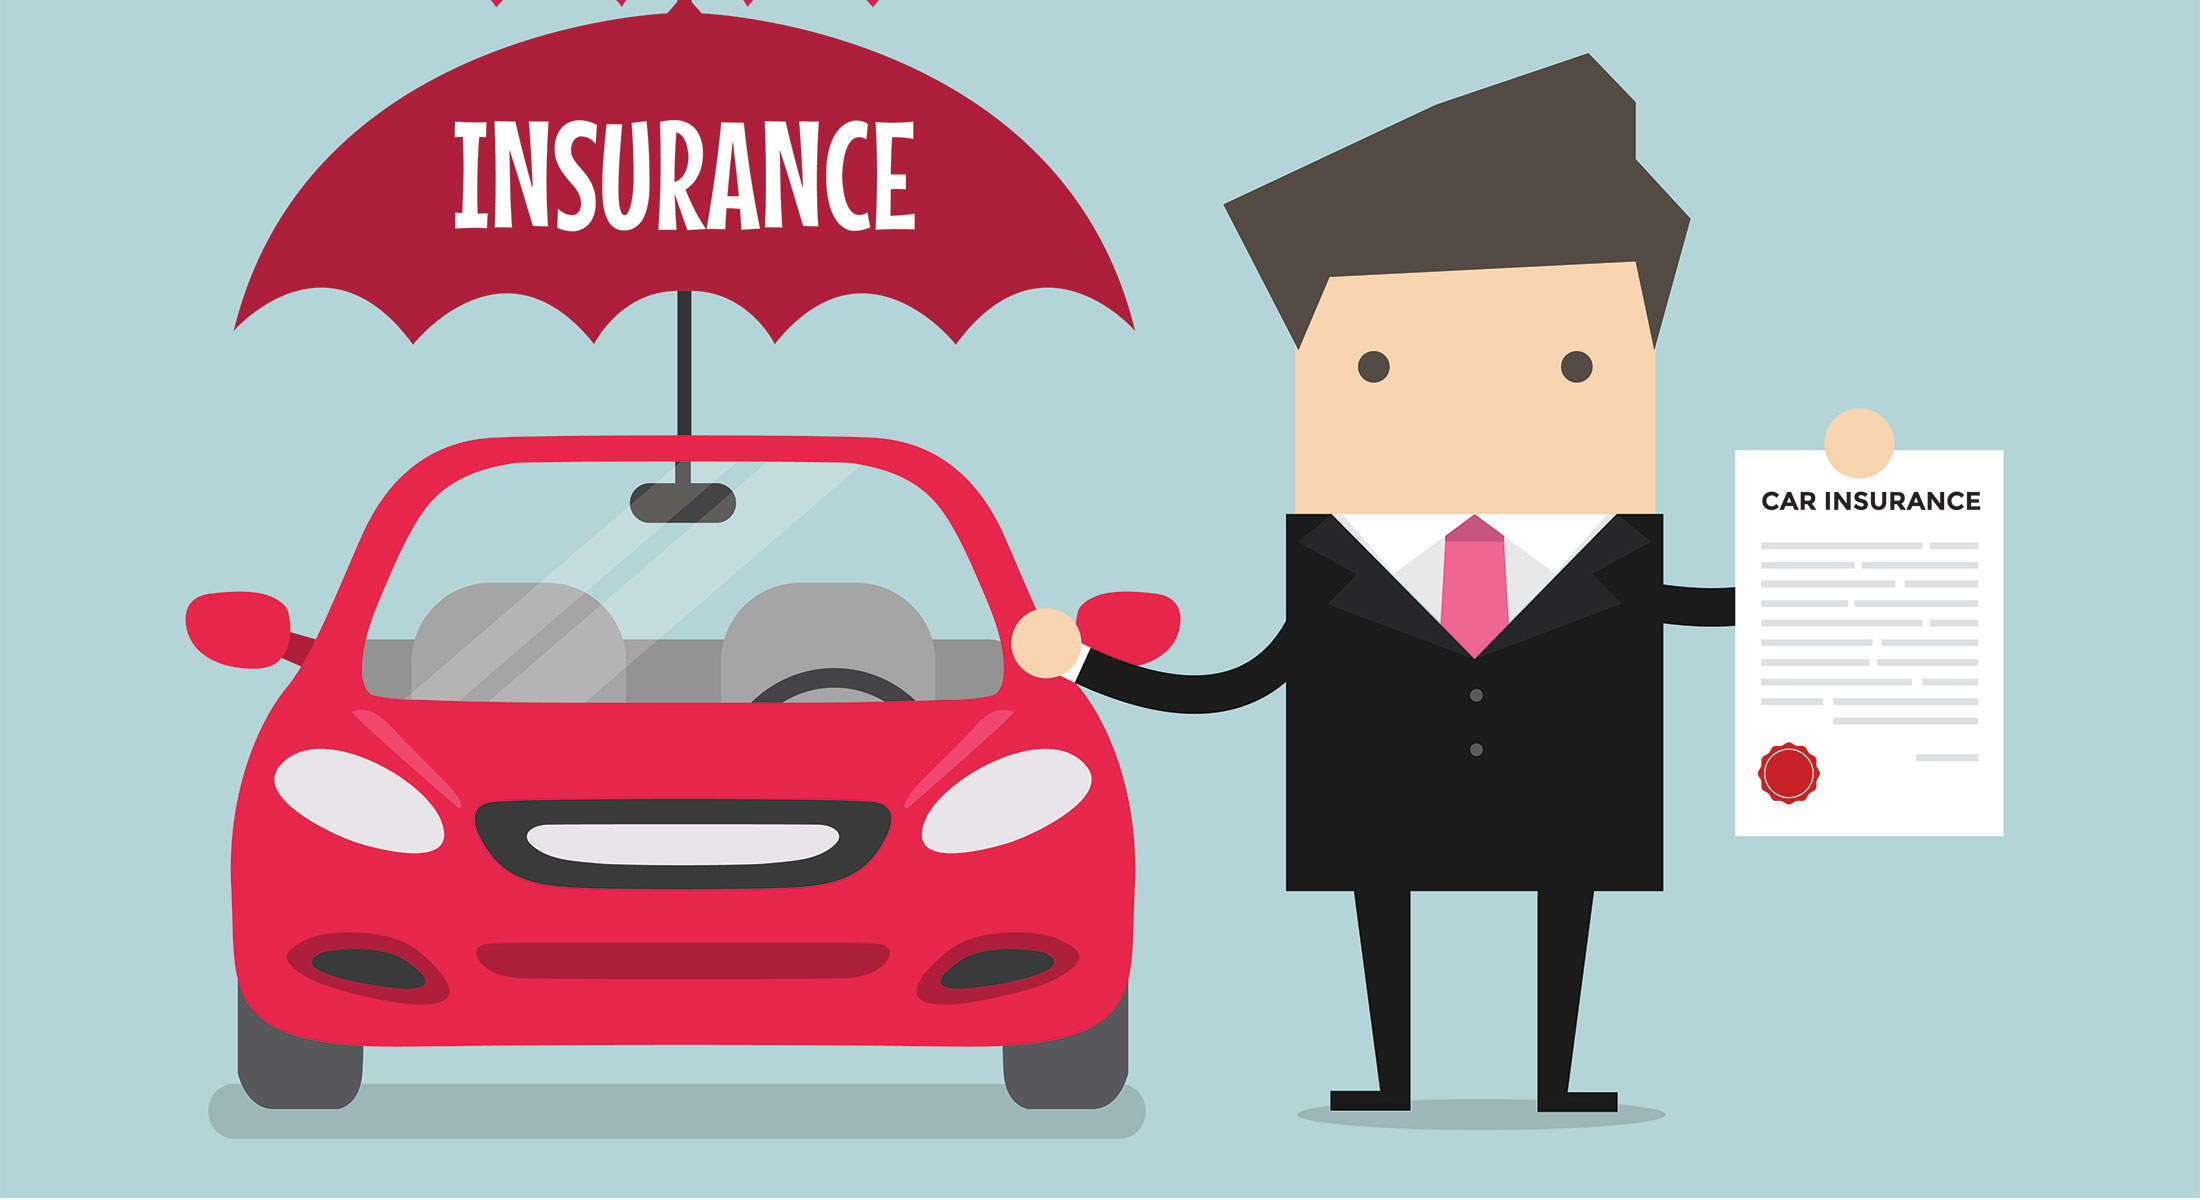 10 Types of Insurance You Should Strongly Consider